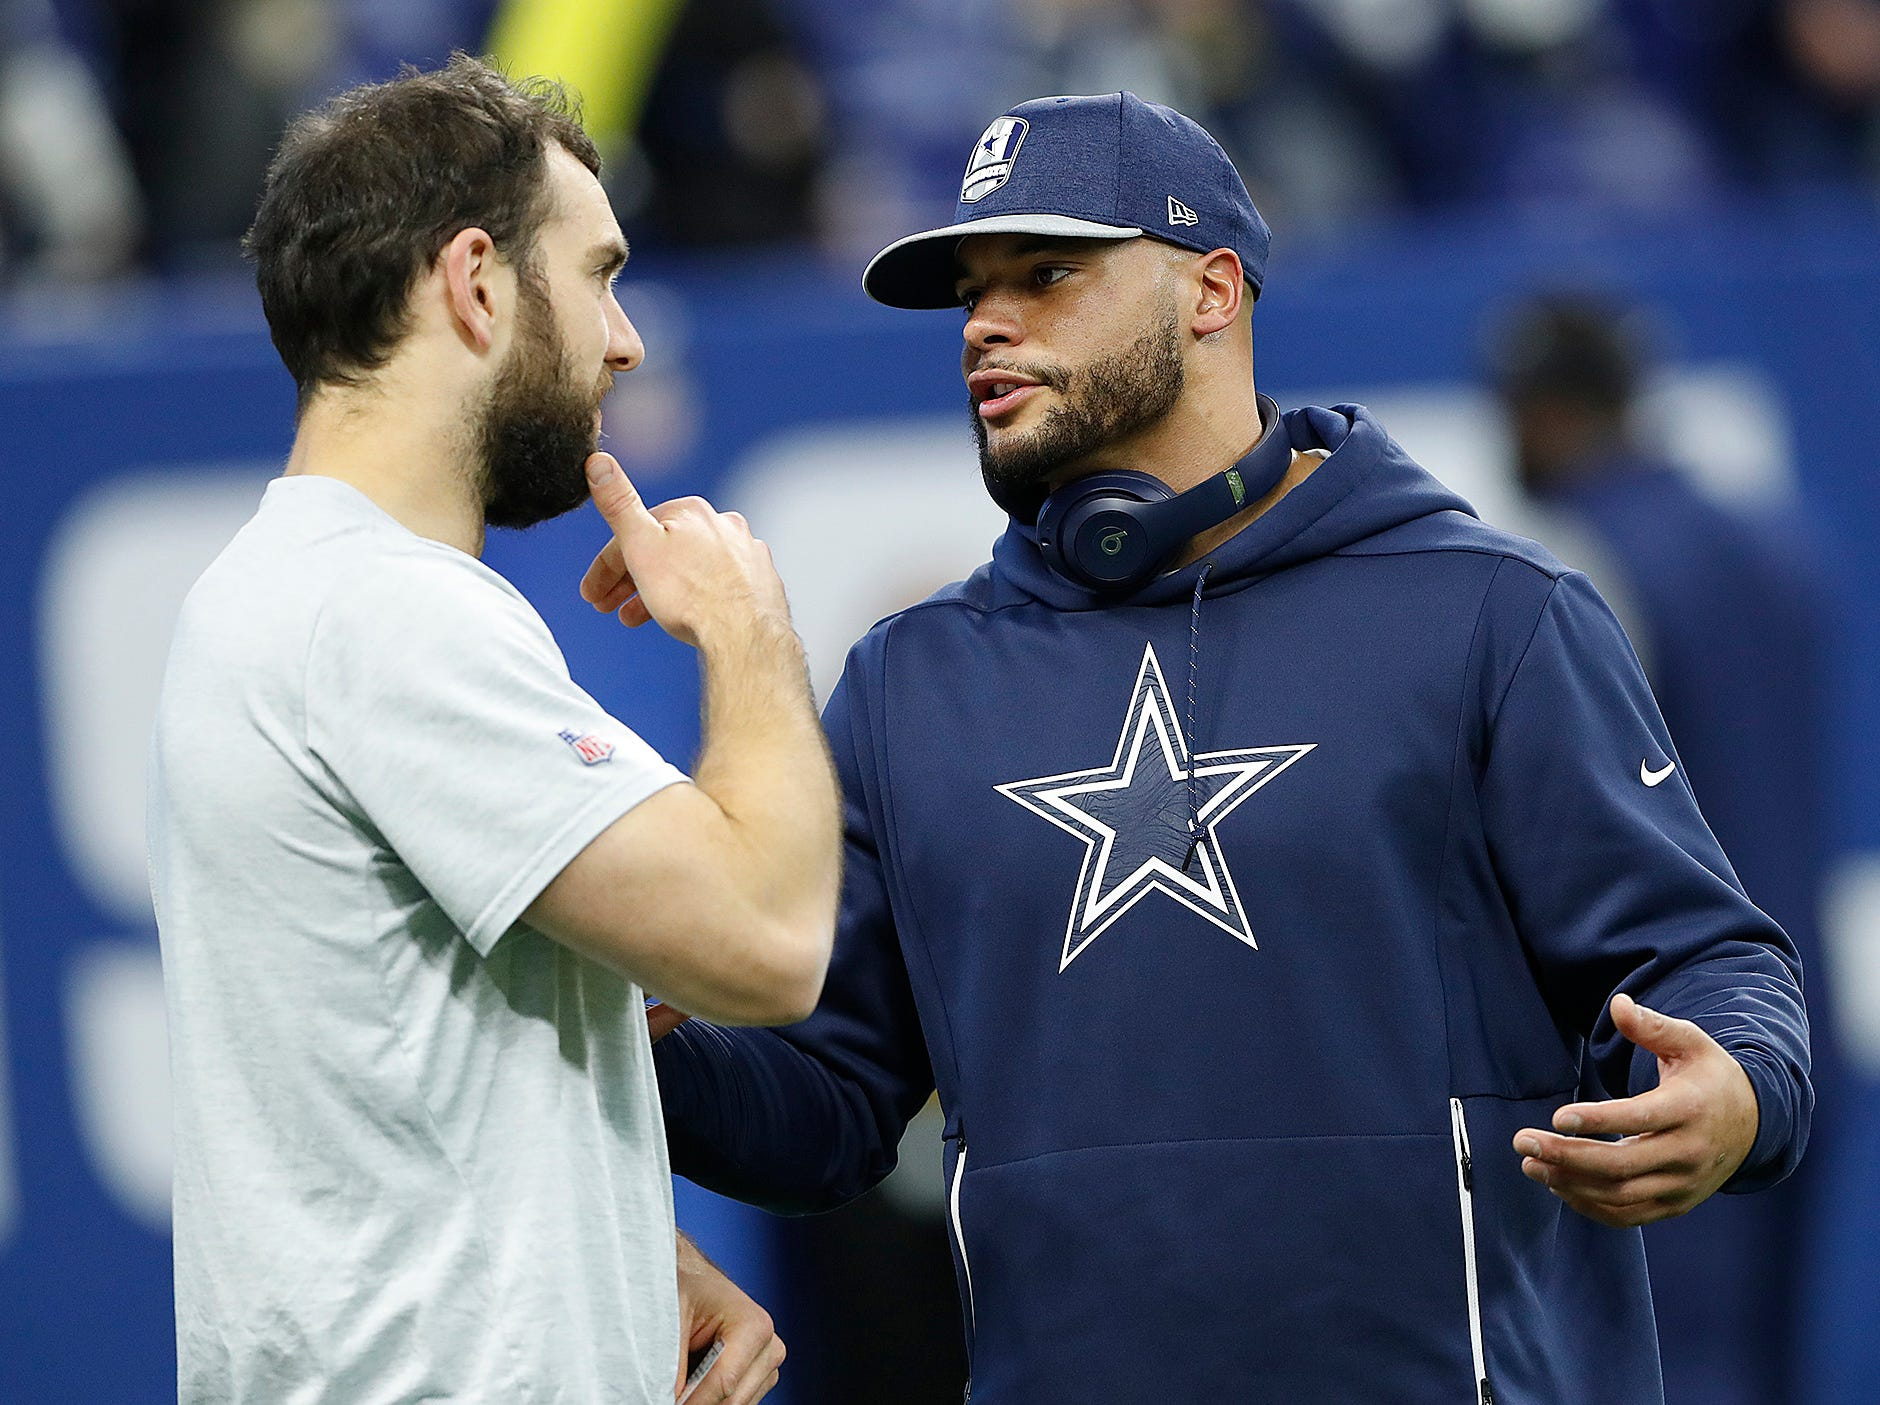 Indianapolis Colts quarterback Andrew Luck (12) talsk with Dallas Cowboys quarterback Dak Prescott (4) before the start of their game against the Dallas Cowboys at Lucas Oil Stadium on Sunday, Dec. 16, 2018.